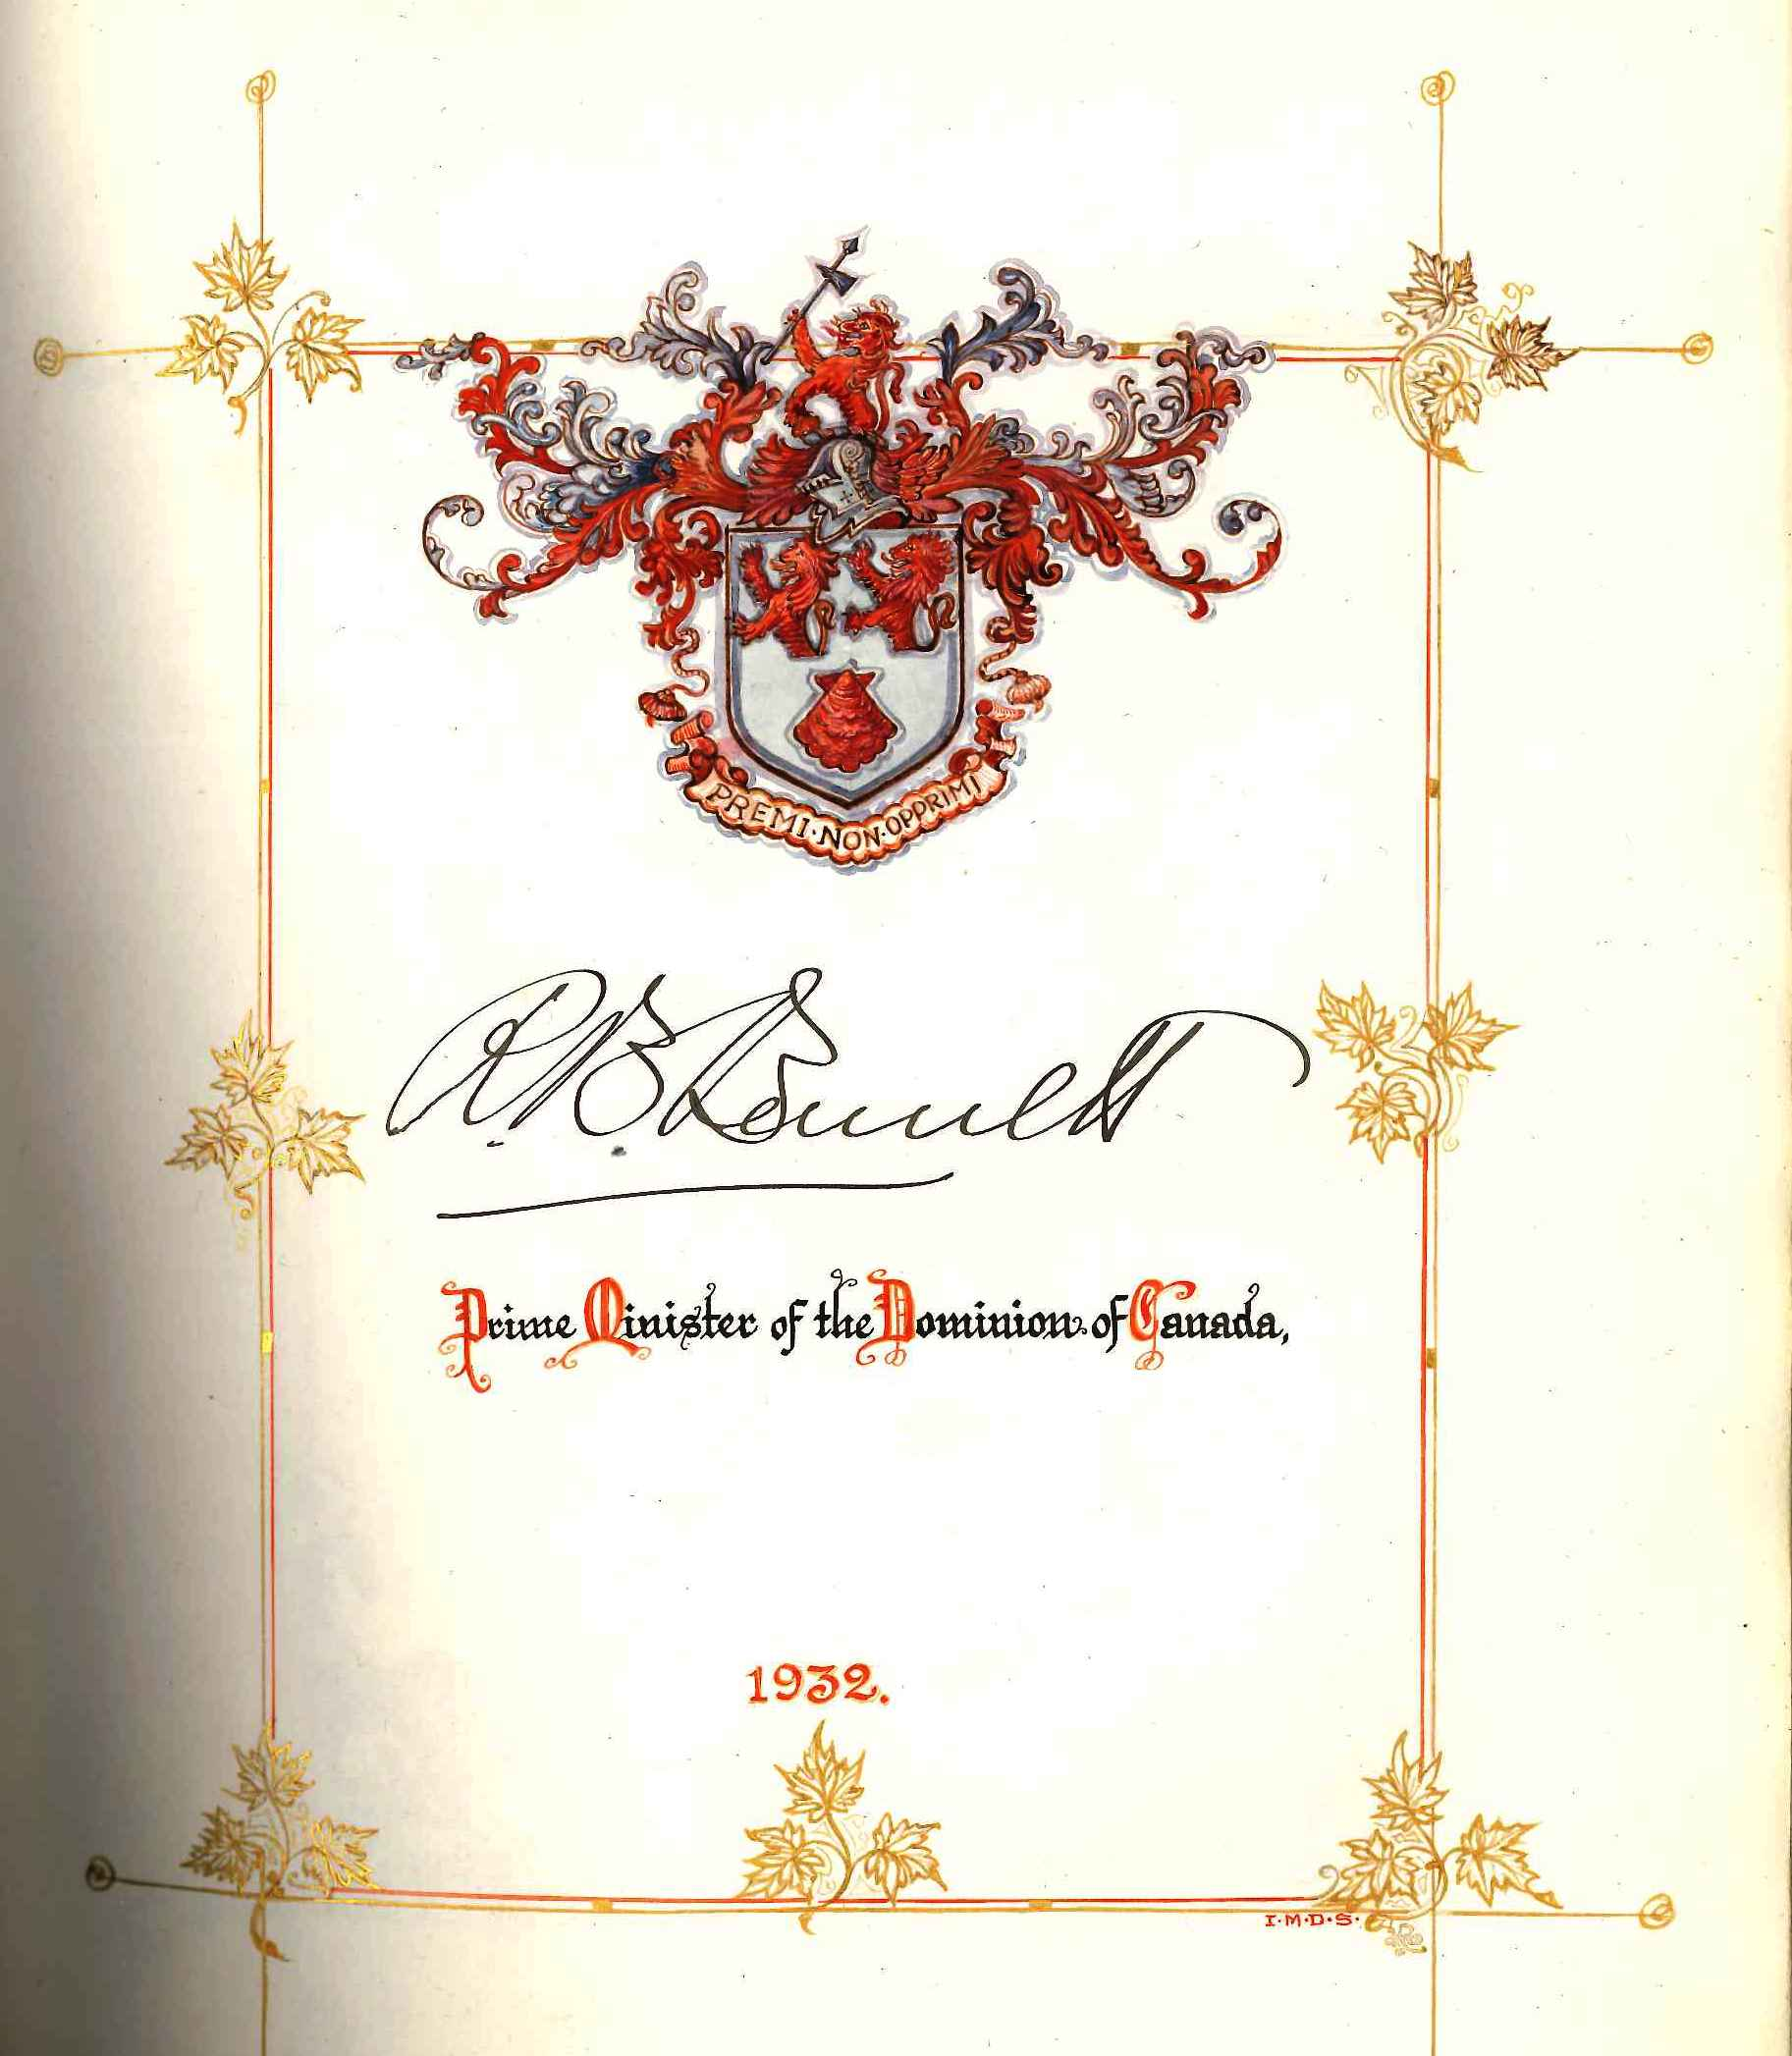 Prime Minister R.B. Bennett's Signature In The CNE Opening Ceremonies Book, 1932